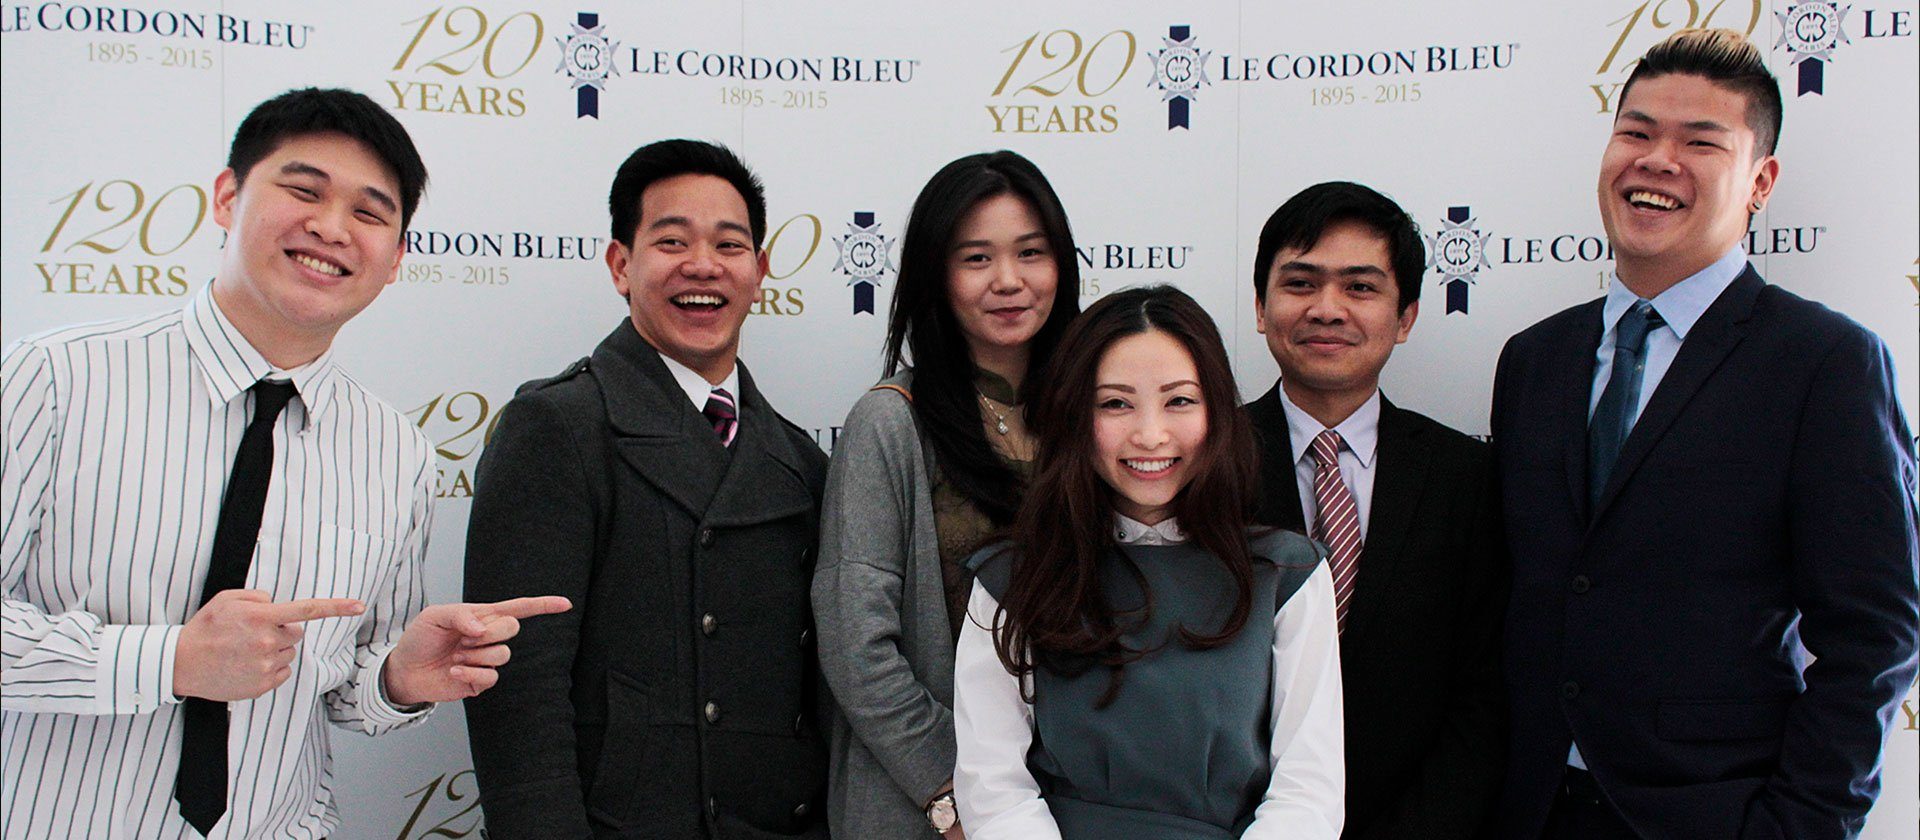 Le Cordon Bleu Melbourne Graduation Ceremony